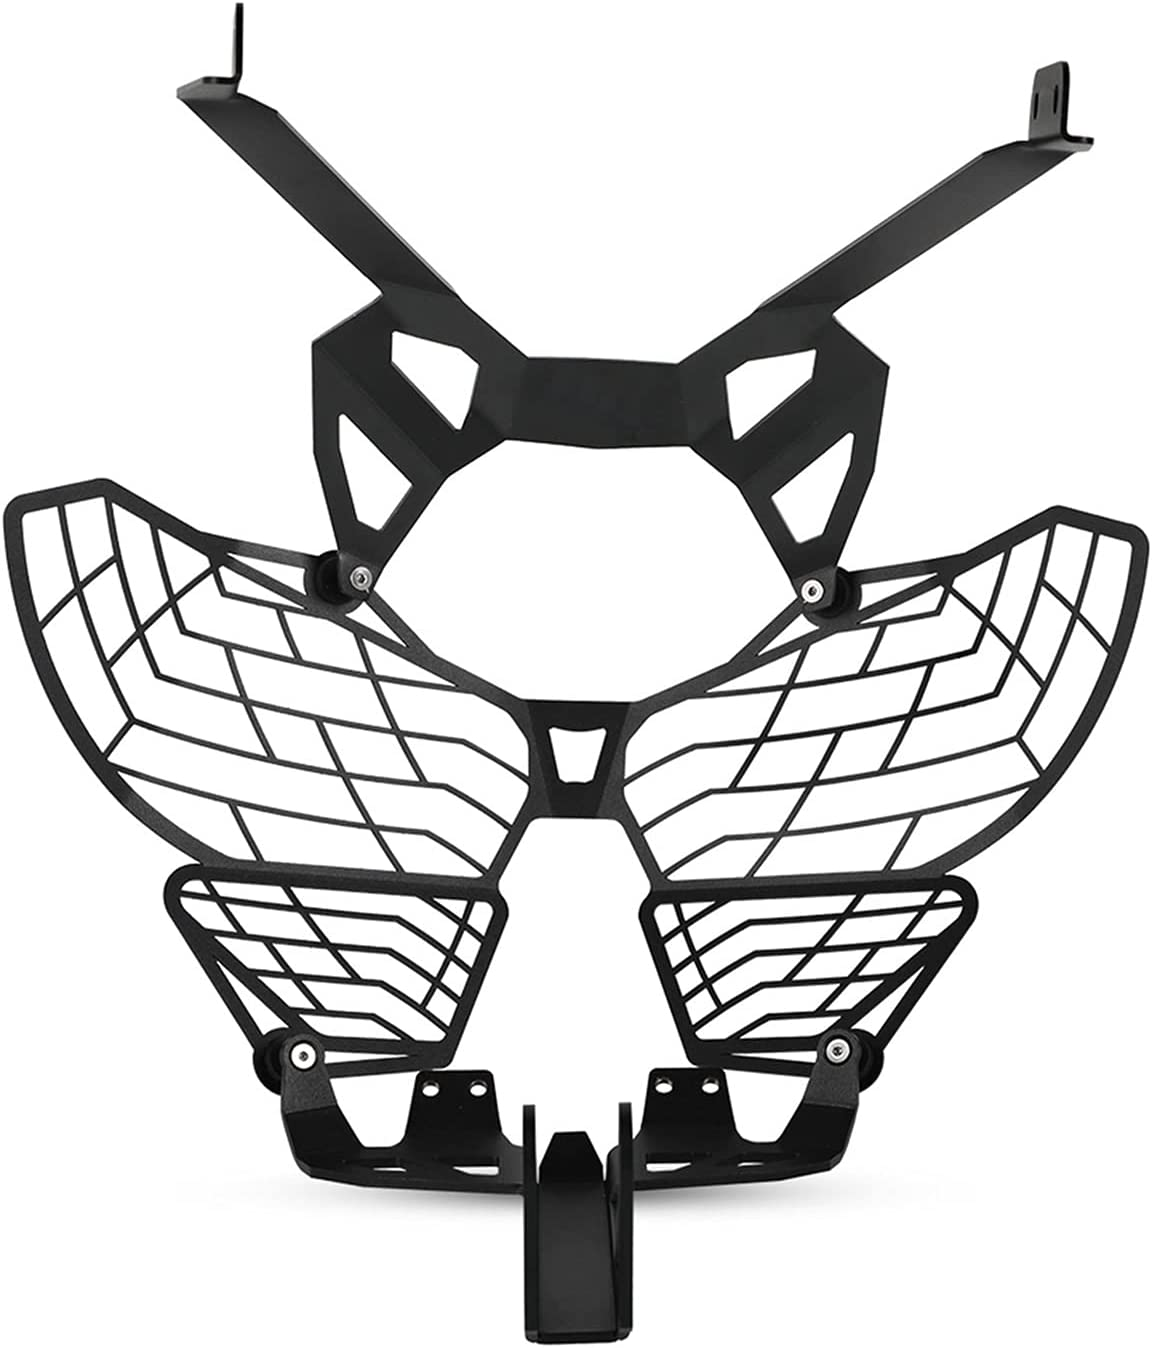 Motorcycle 67% OFF of fixed price Headlight Protection Cover for CRF L 1100 Africa Twin safety